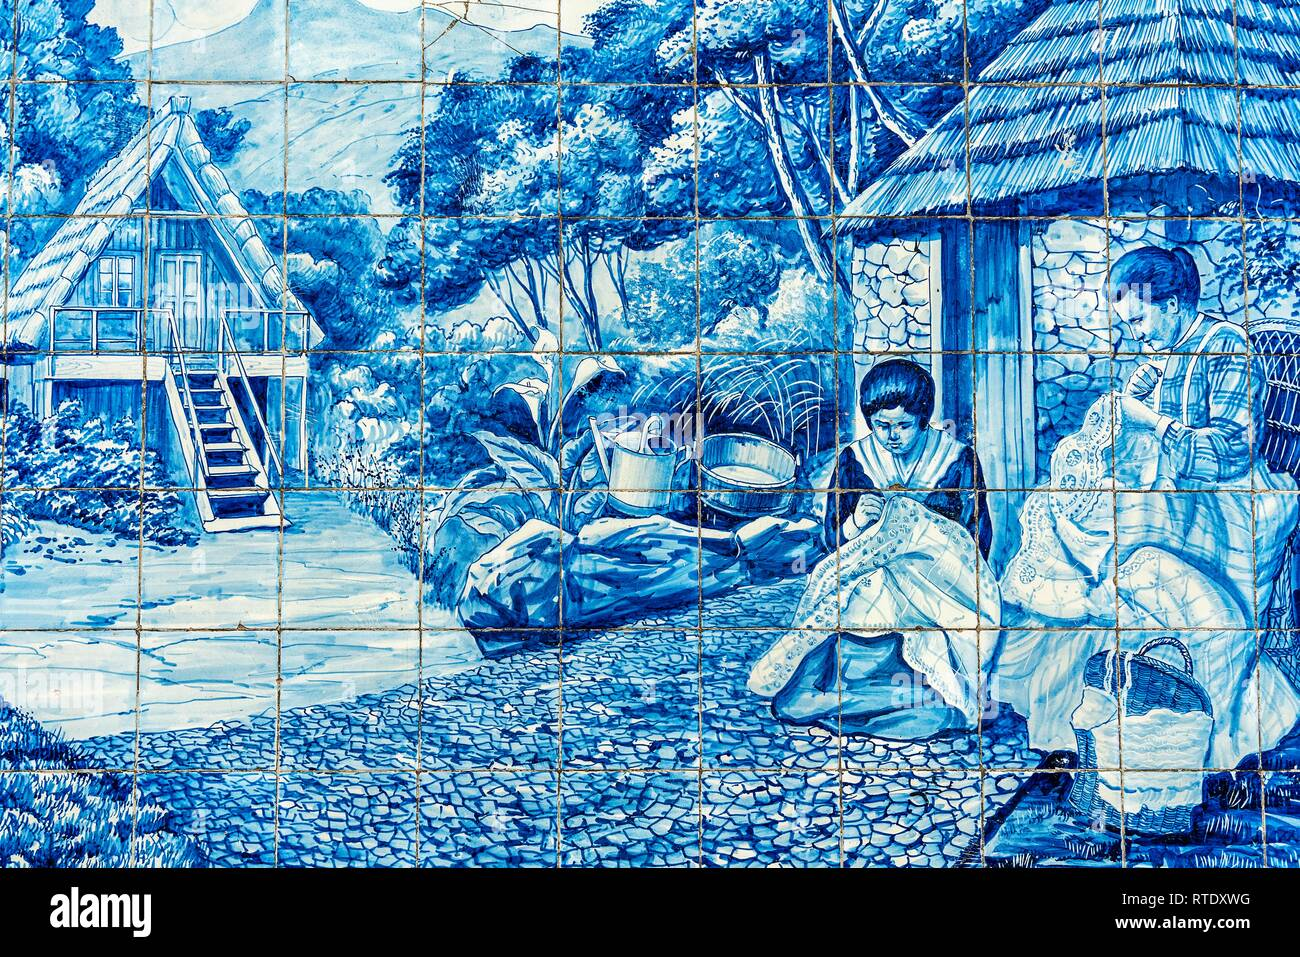 Two women embroidering, historical azulejos, painted ceramic tiles, tiles, funchal, Madeira Island, Portugal - Stock Image